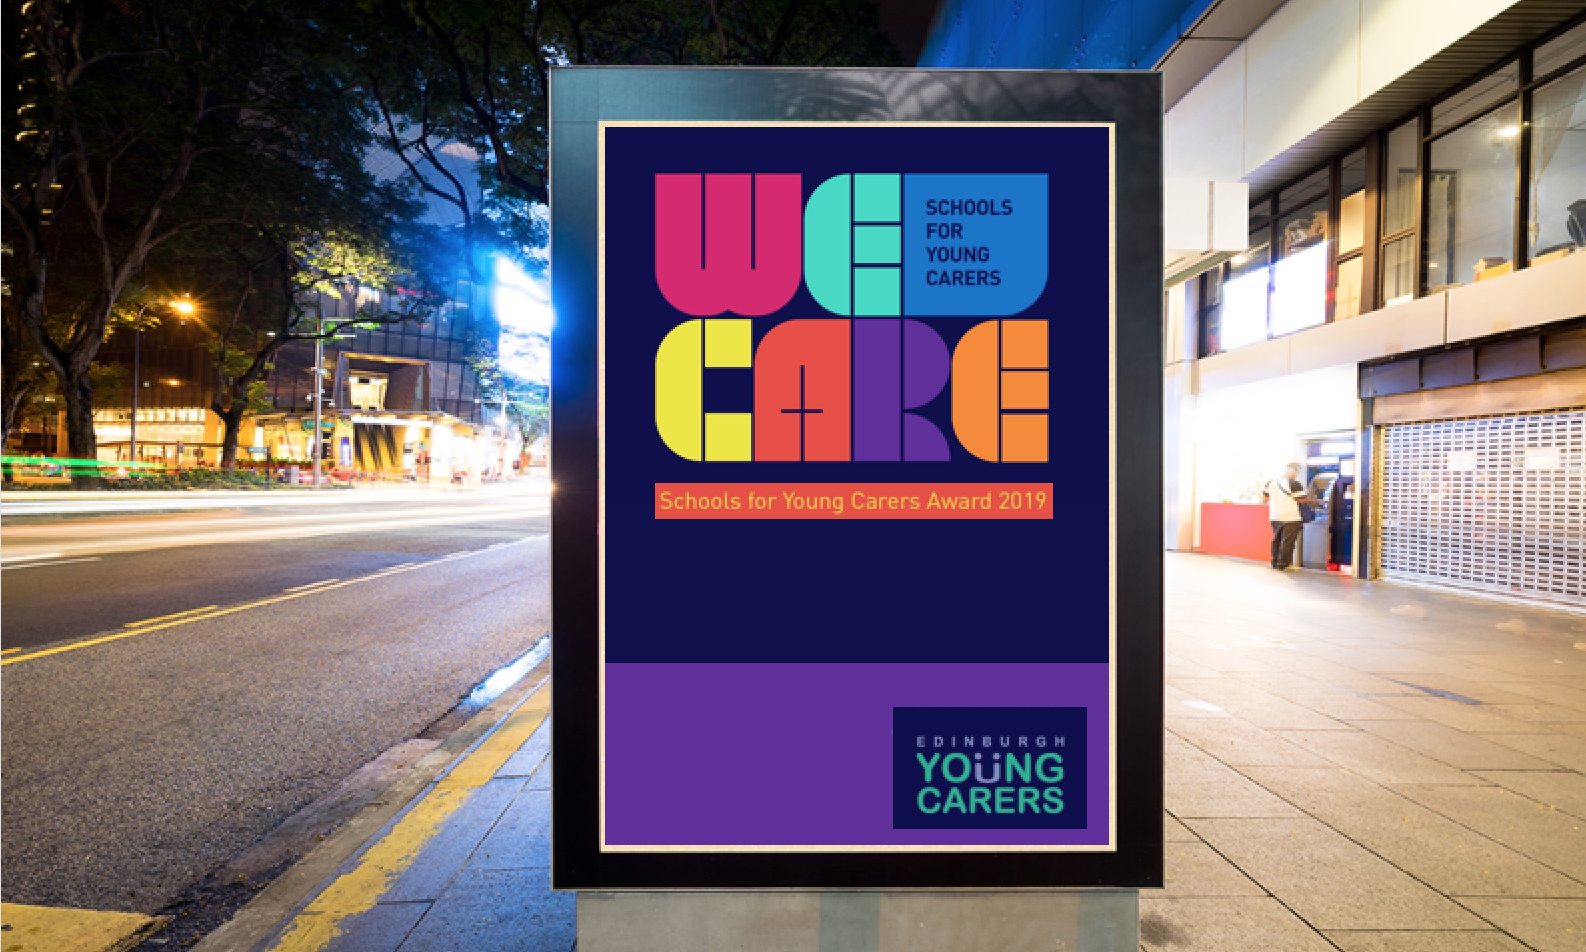 Edinburgh Young Carers